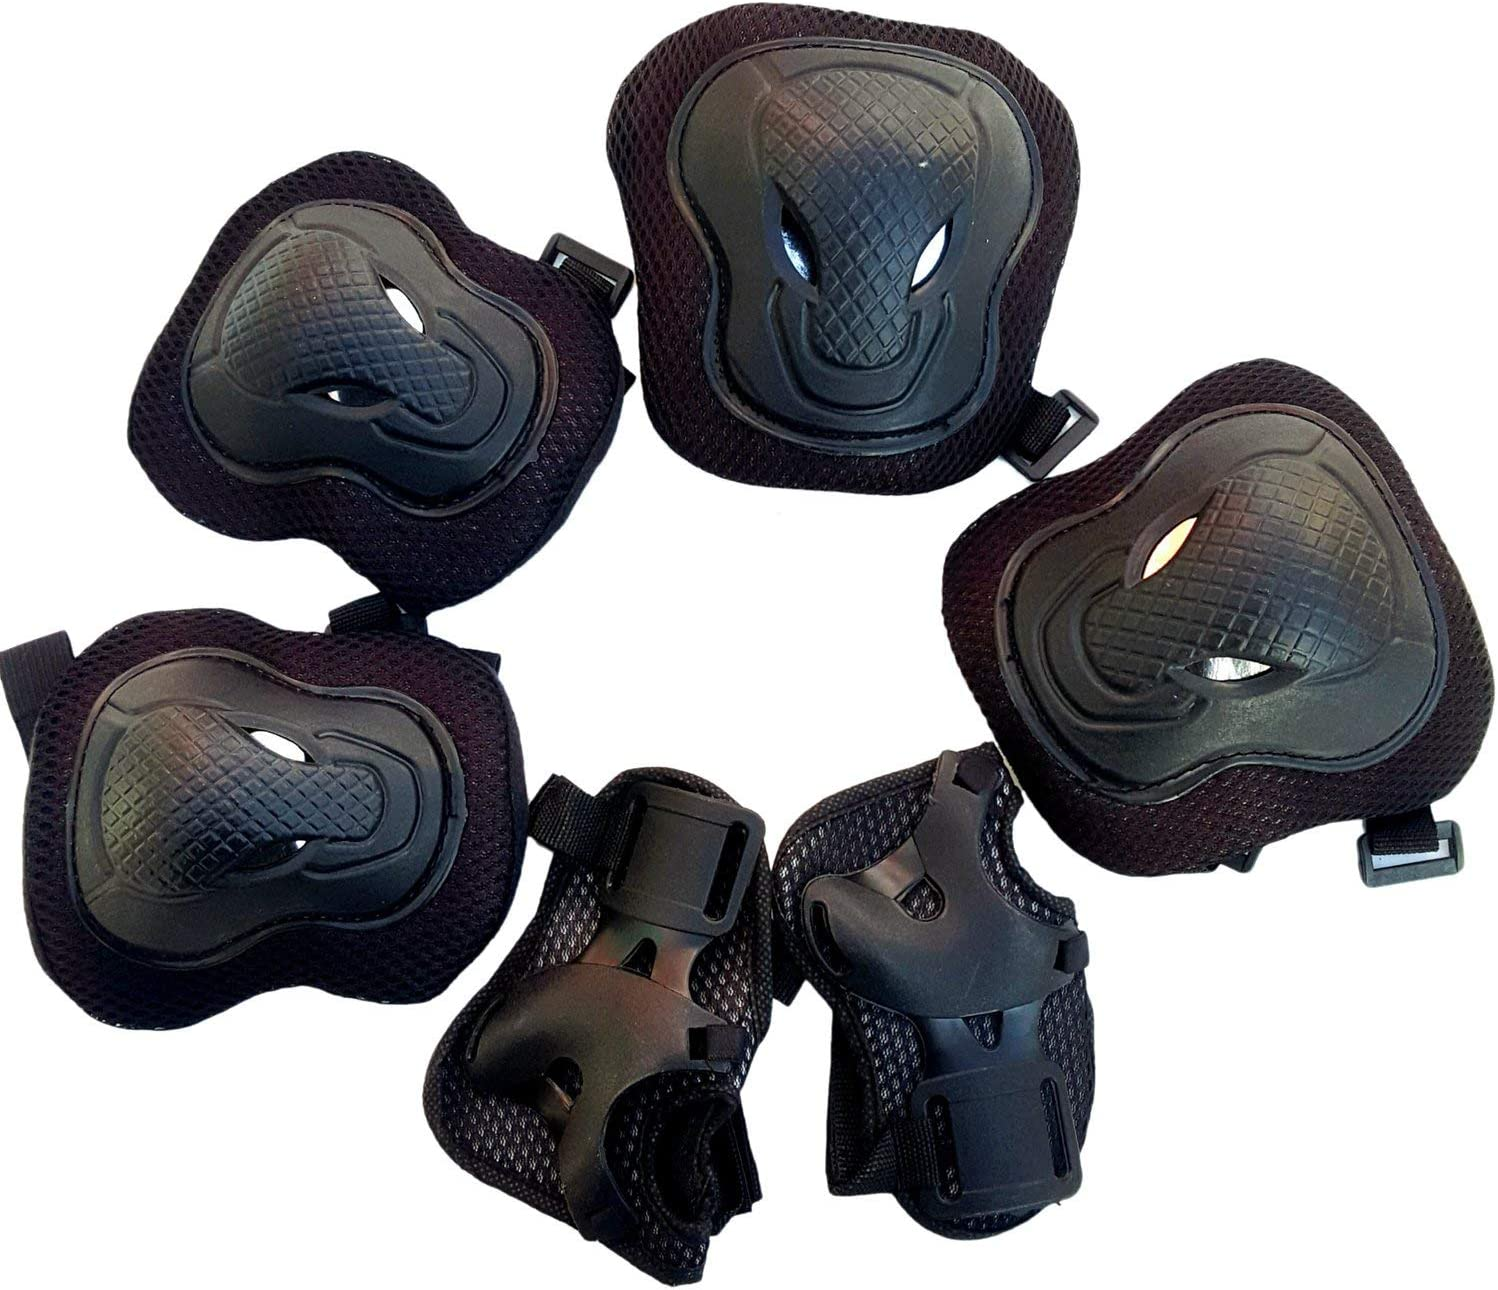 YeBetter Guard Knee Pads and Elbow Pads Support Safety Protective Pads Set for Adult Skate Protective Gear